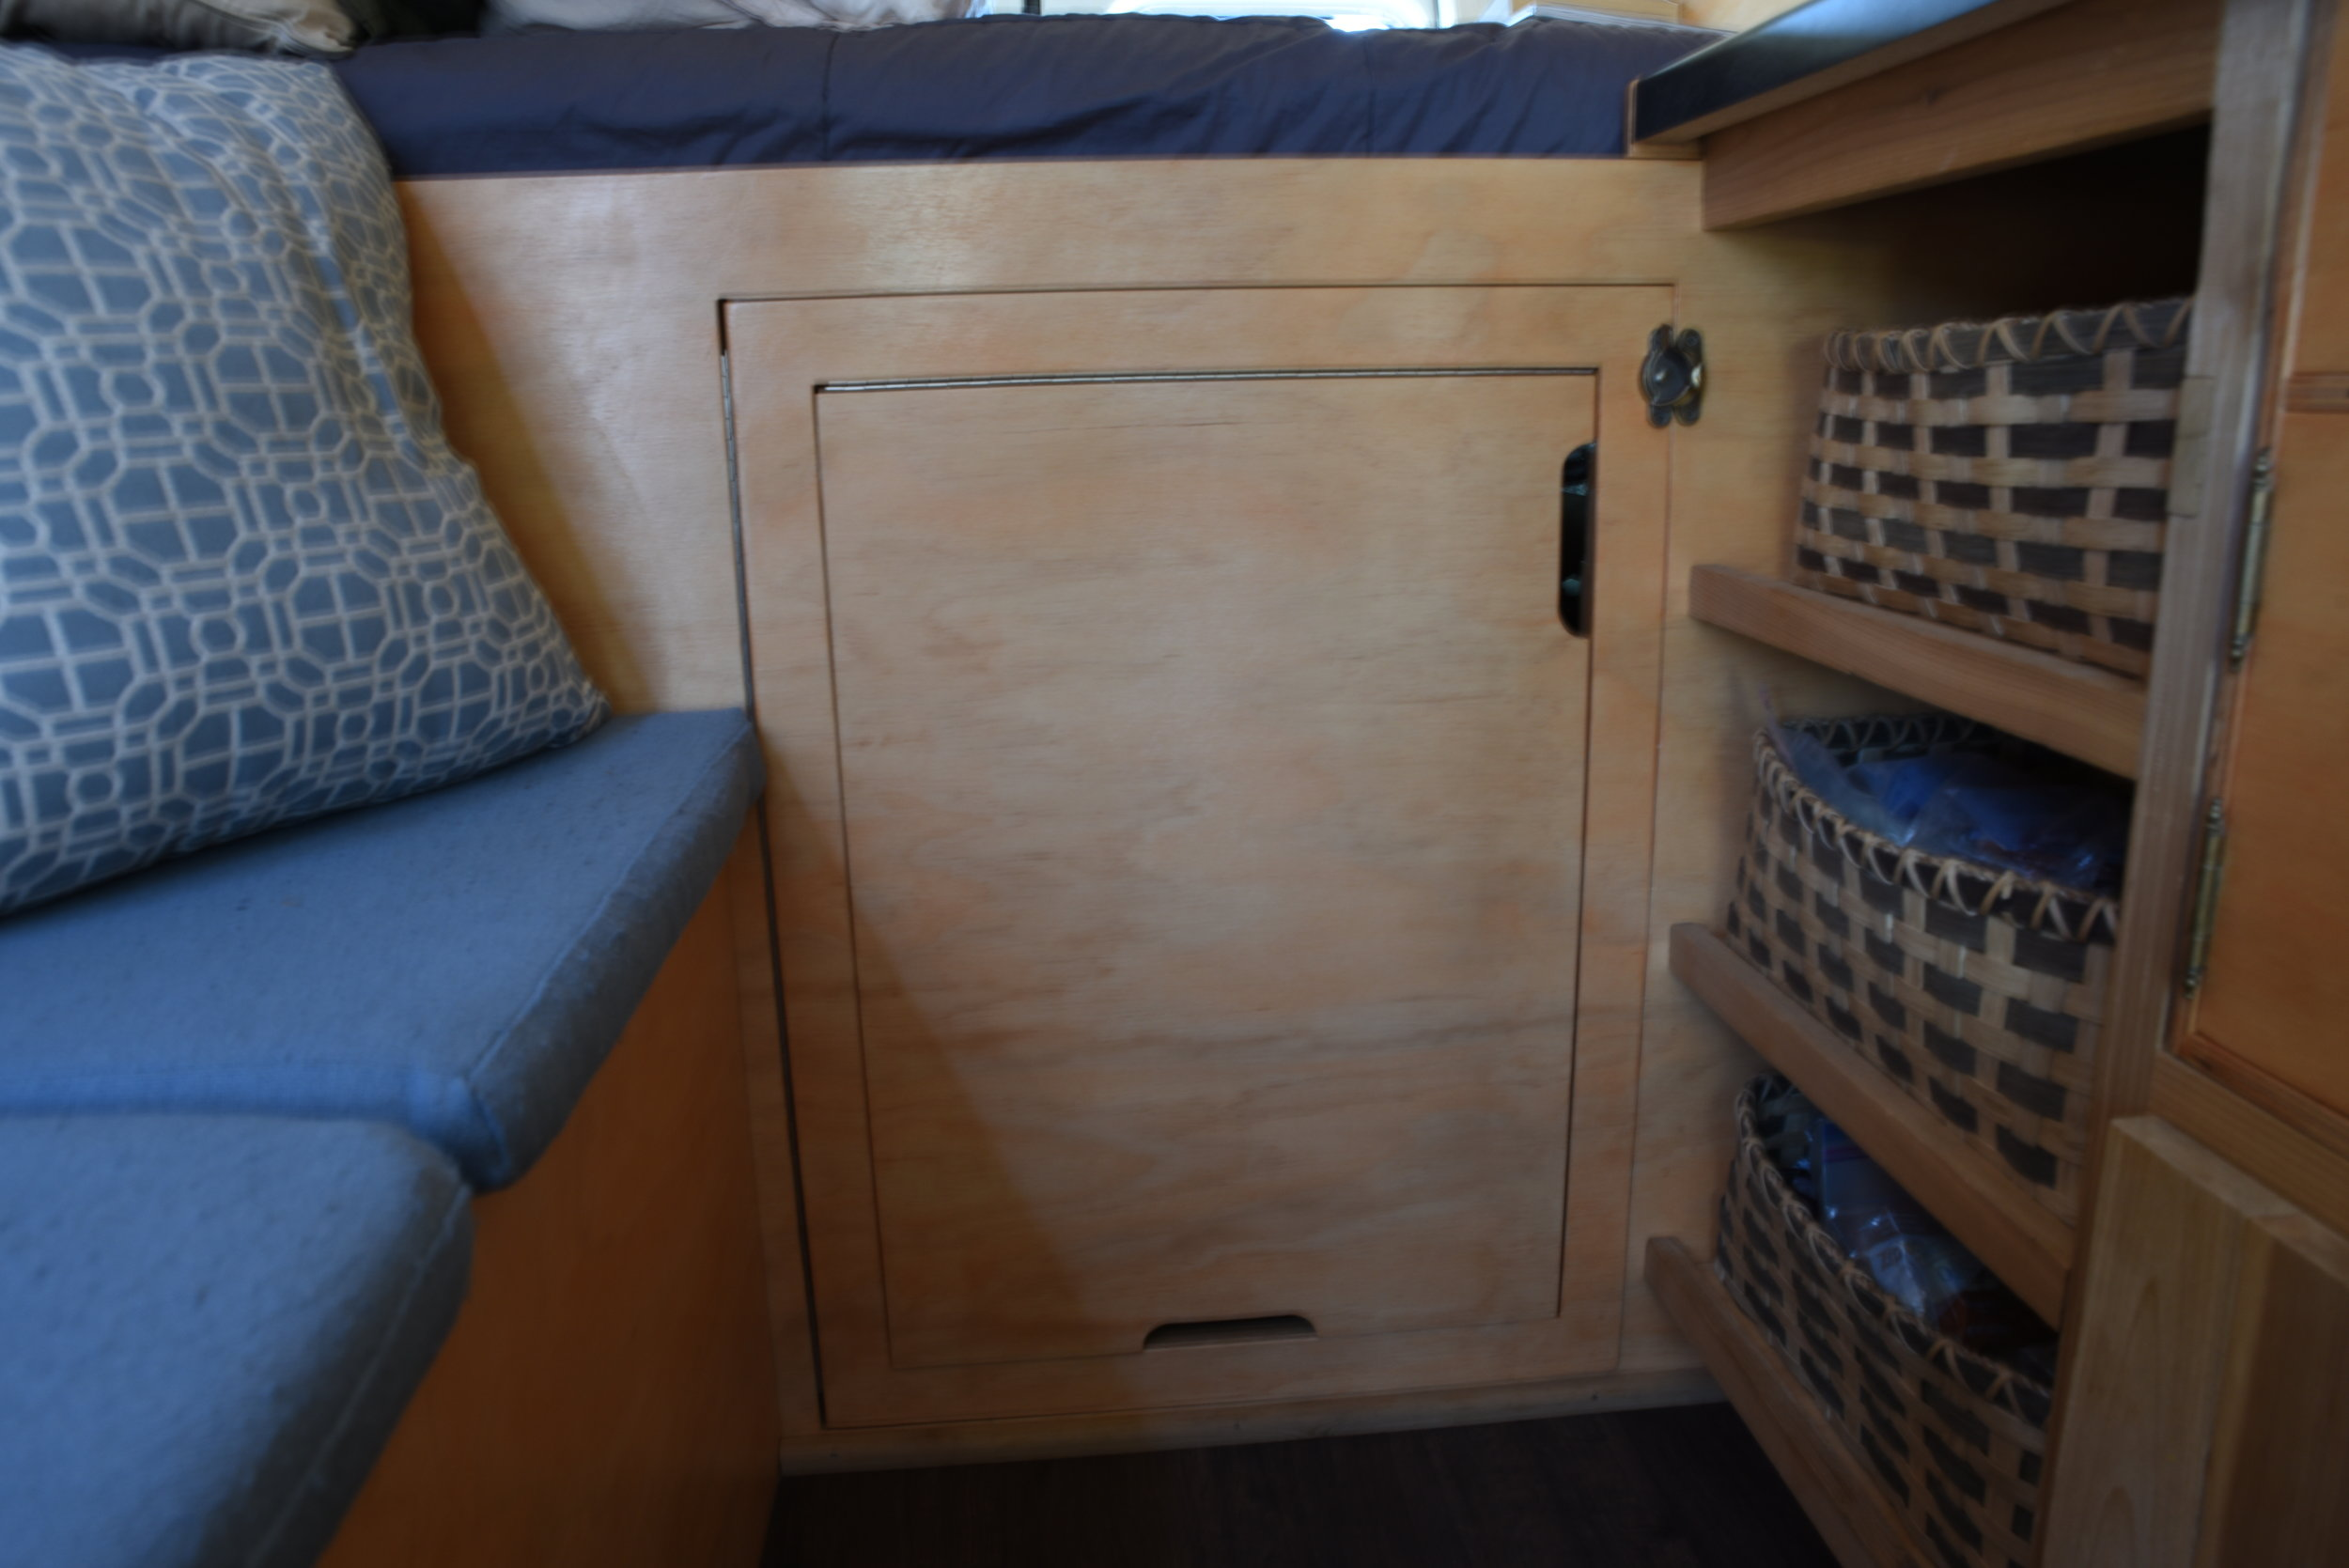 The front of the bed is finished with plywood with a large door in the front with a table within it.